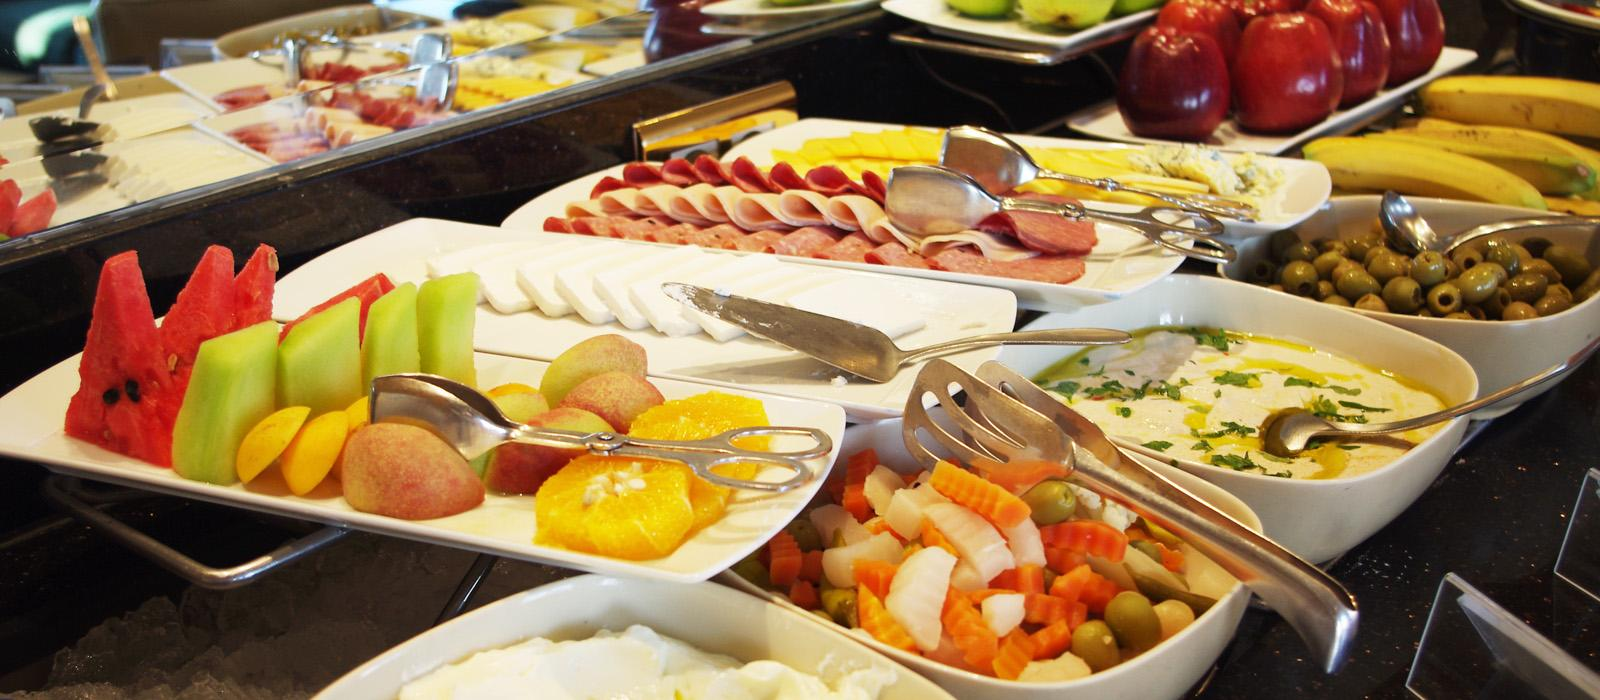 catering-en-lima-buffet-criollo-july-04